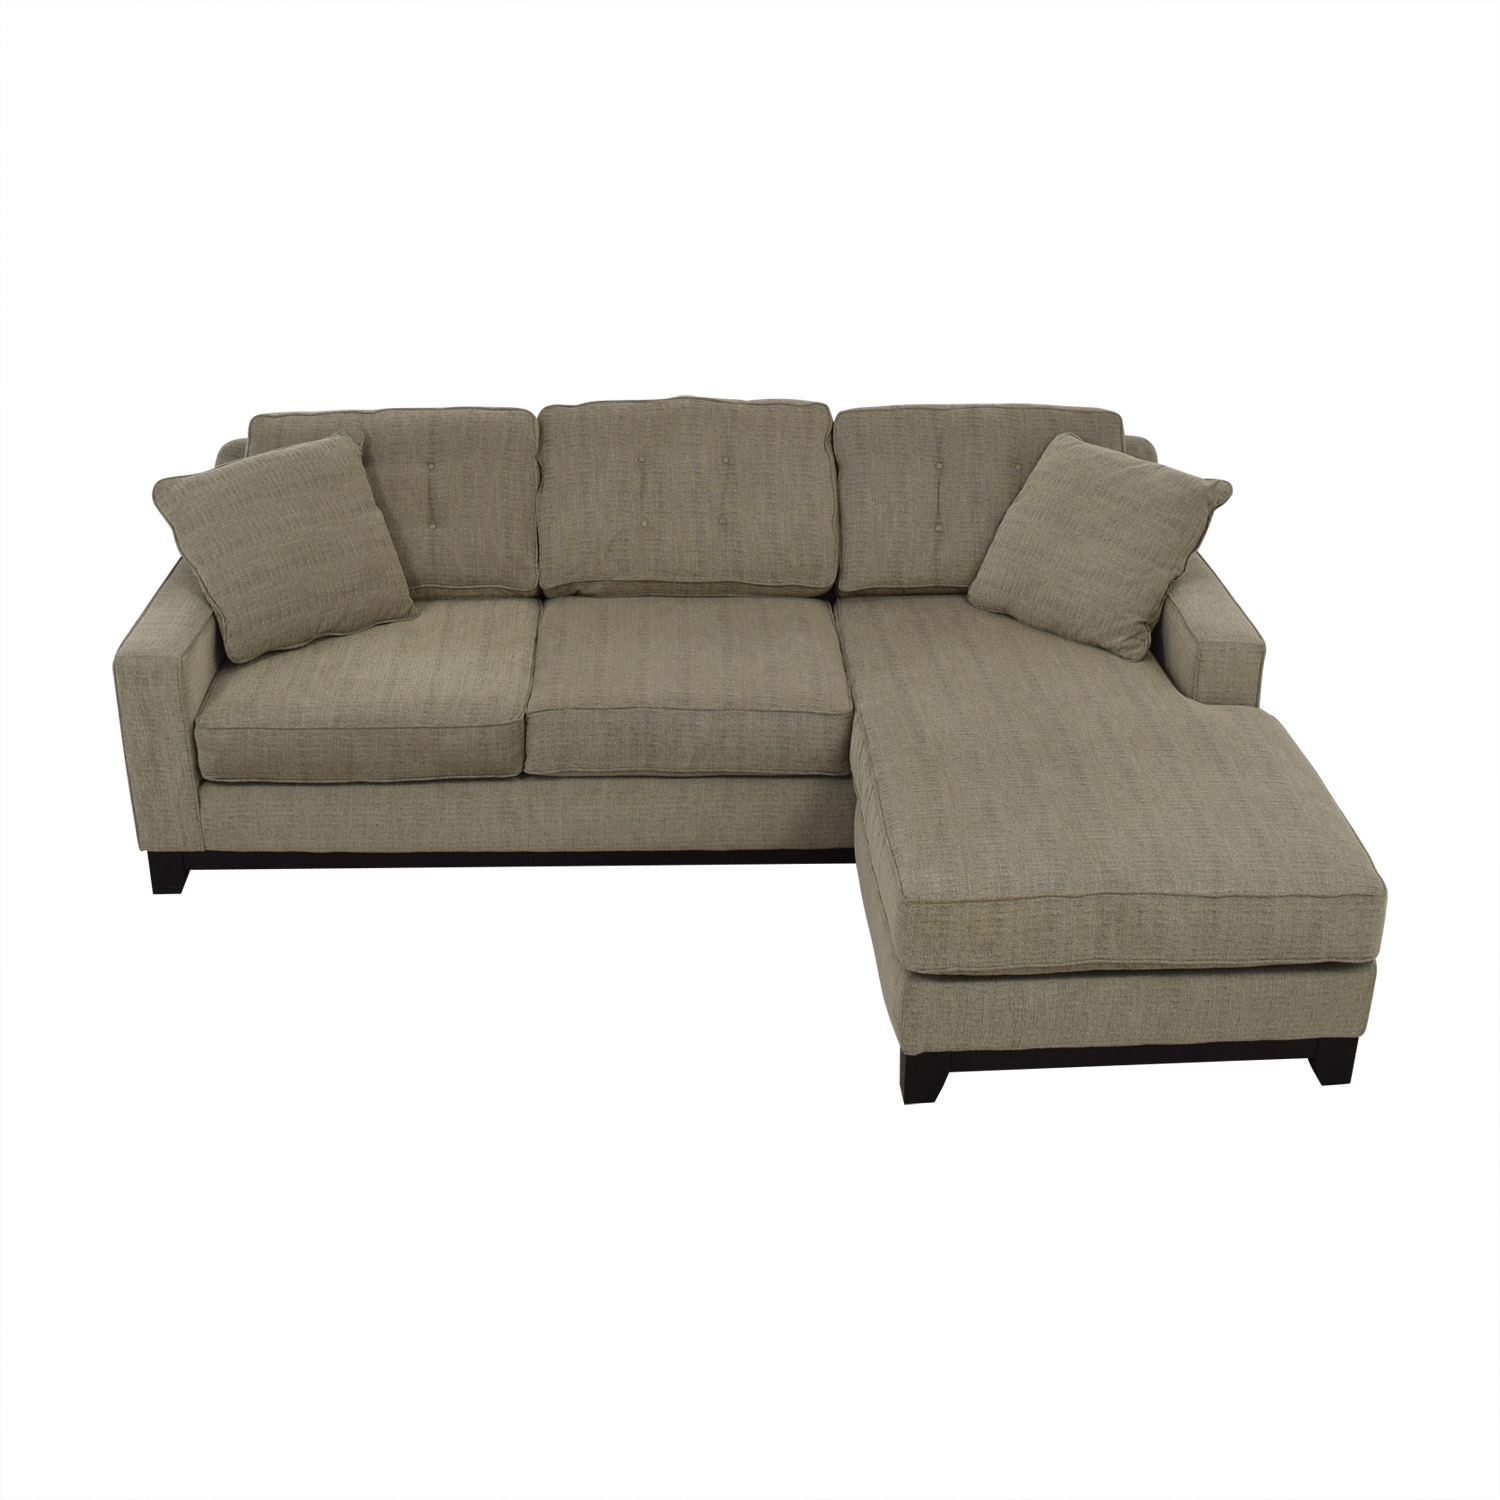 shop Macy's Gray Chaise Sectional Macy's Sectionals